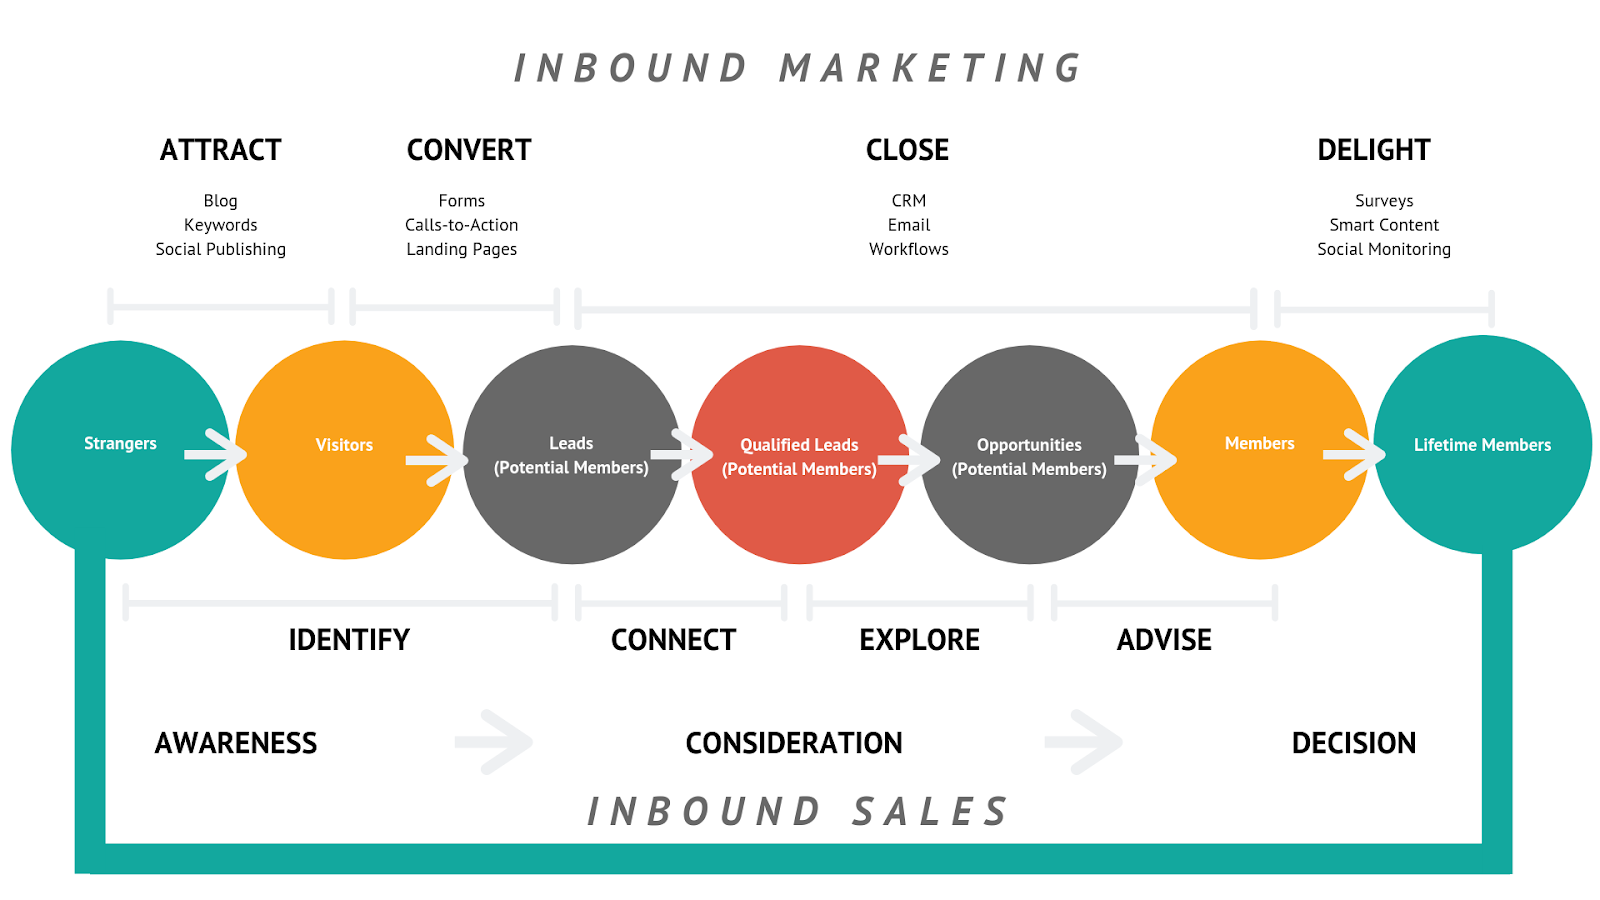 inbound marketing for member-based organisations